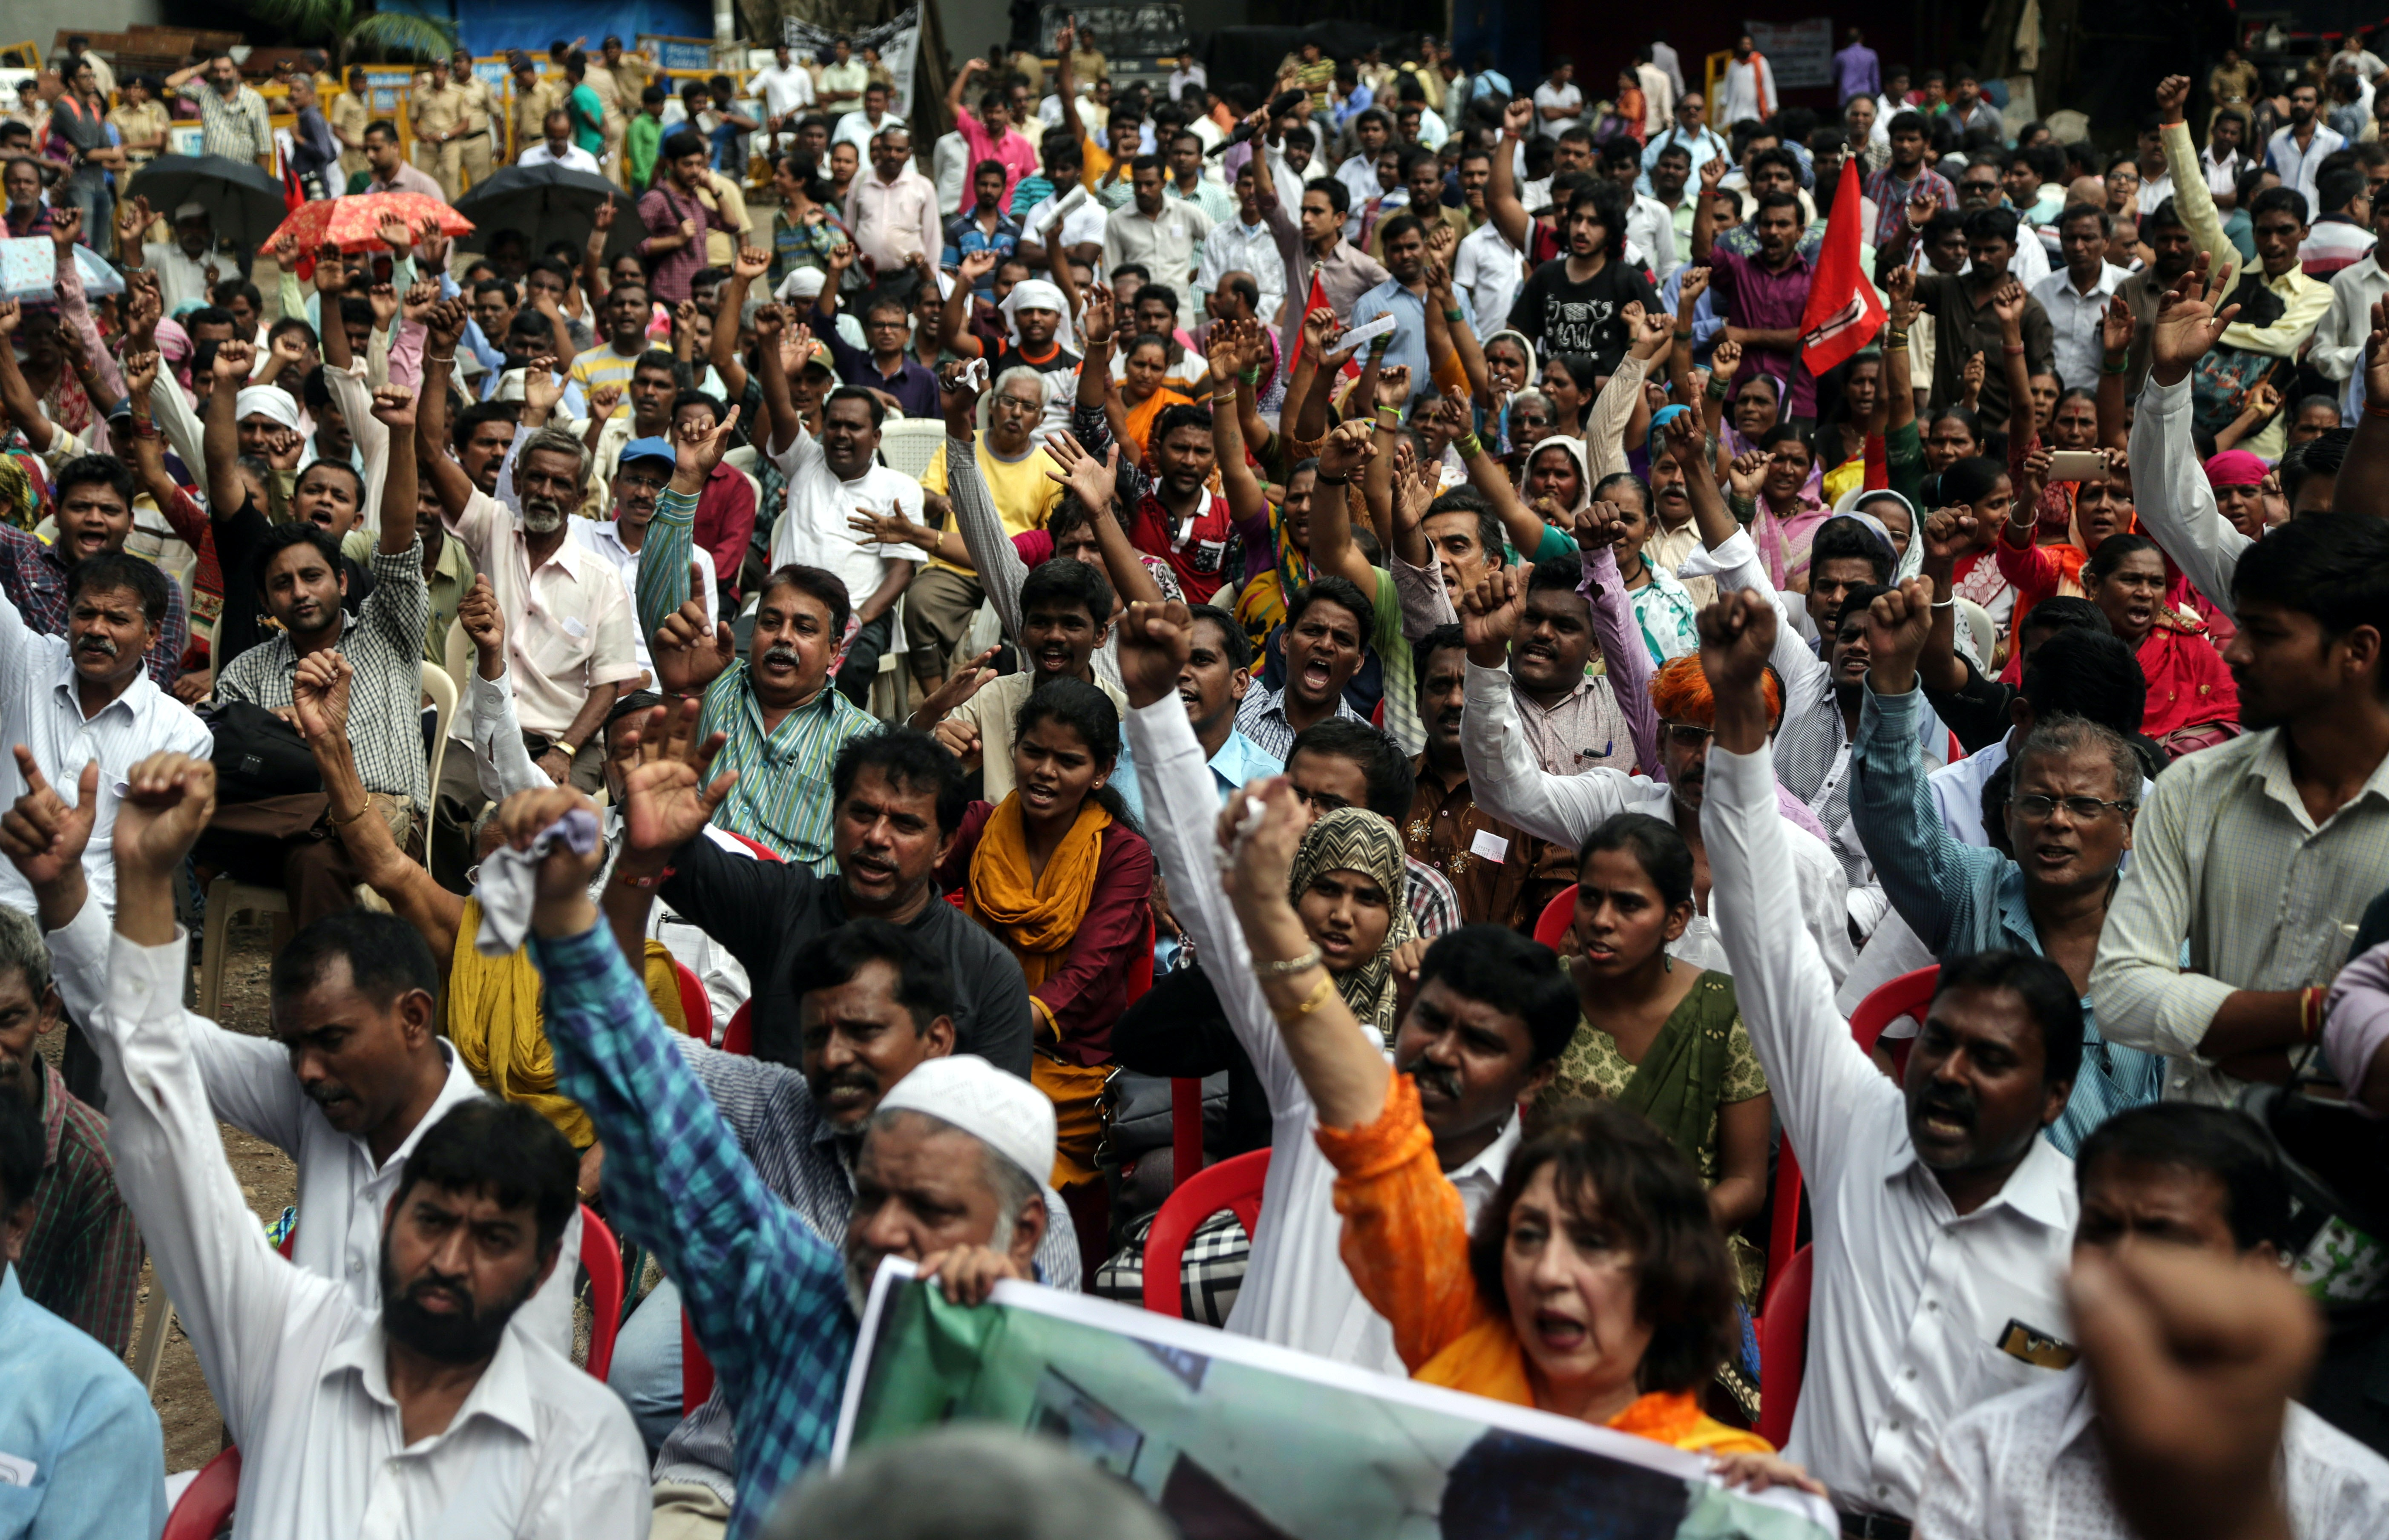 Dalits and Adivasis in India - Statistics and Facts